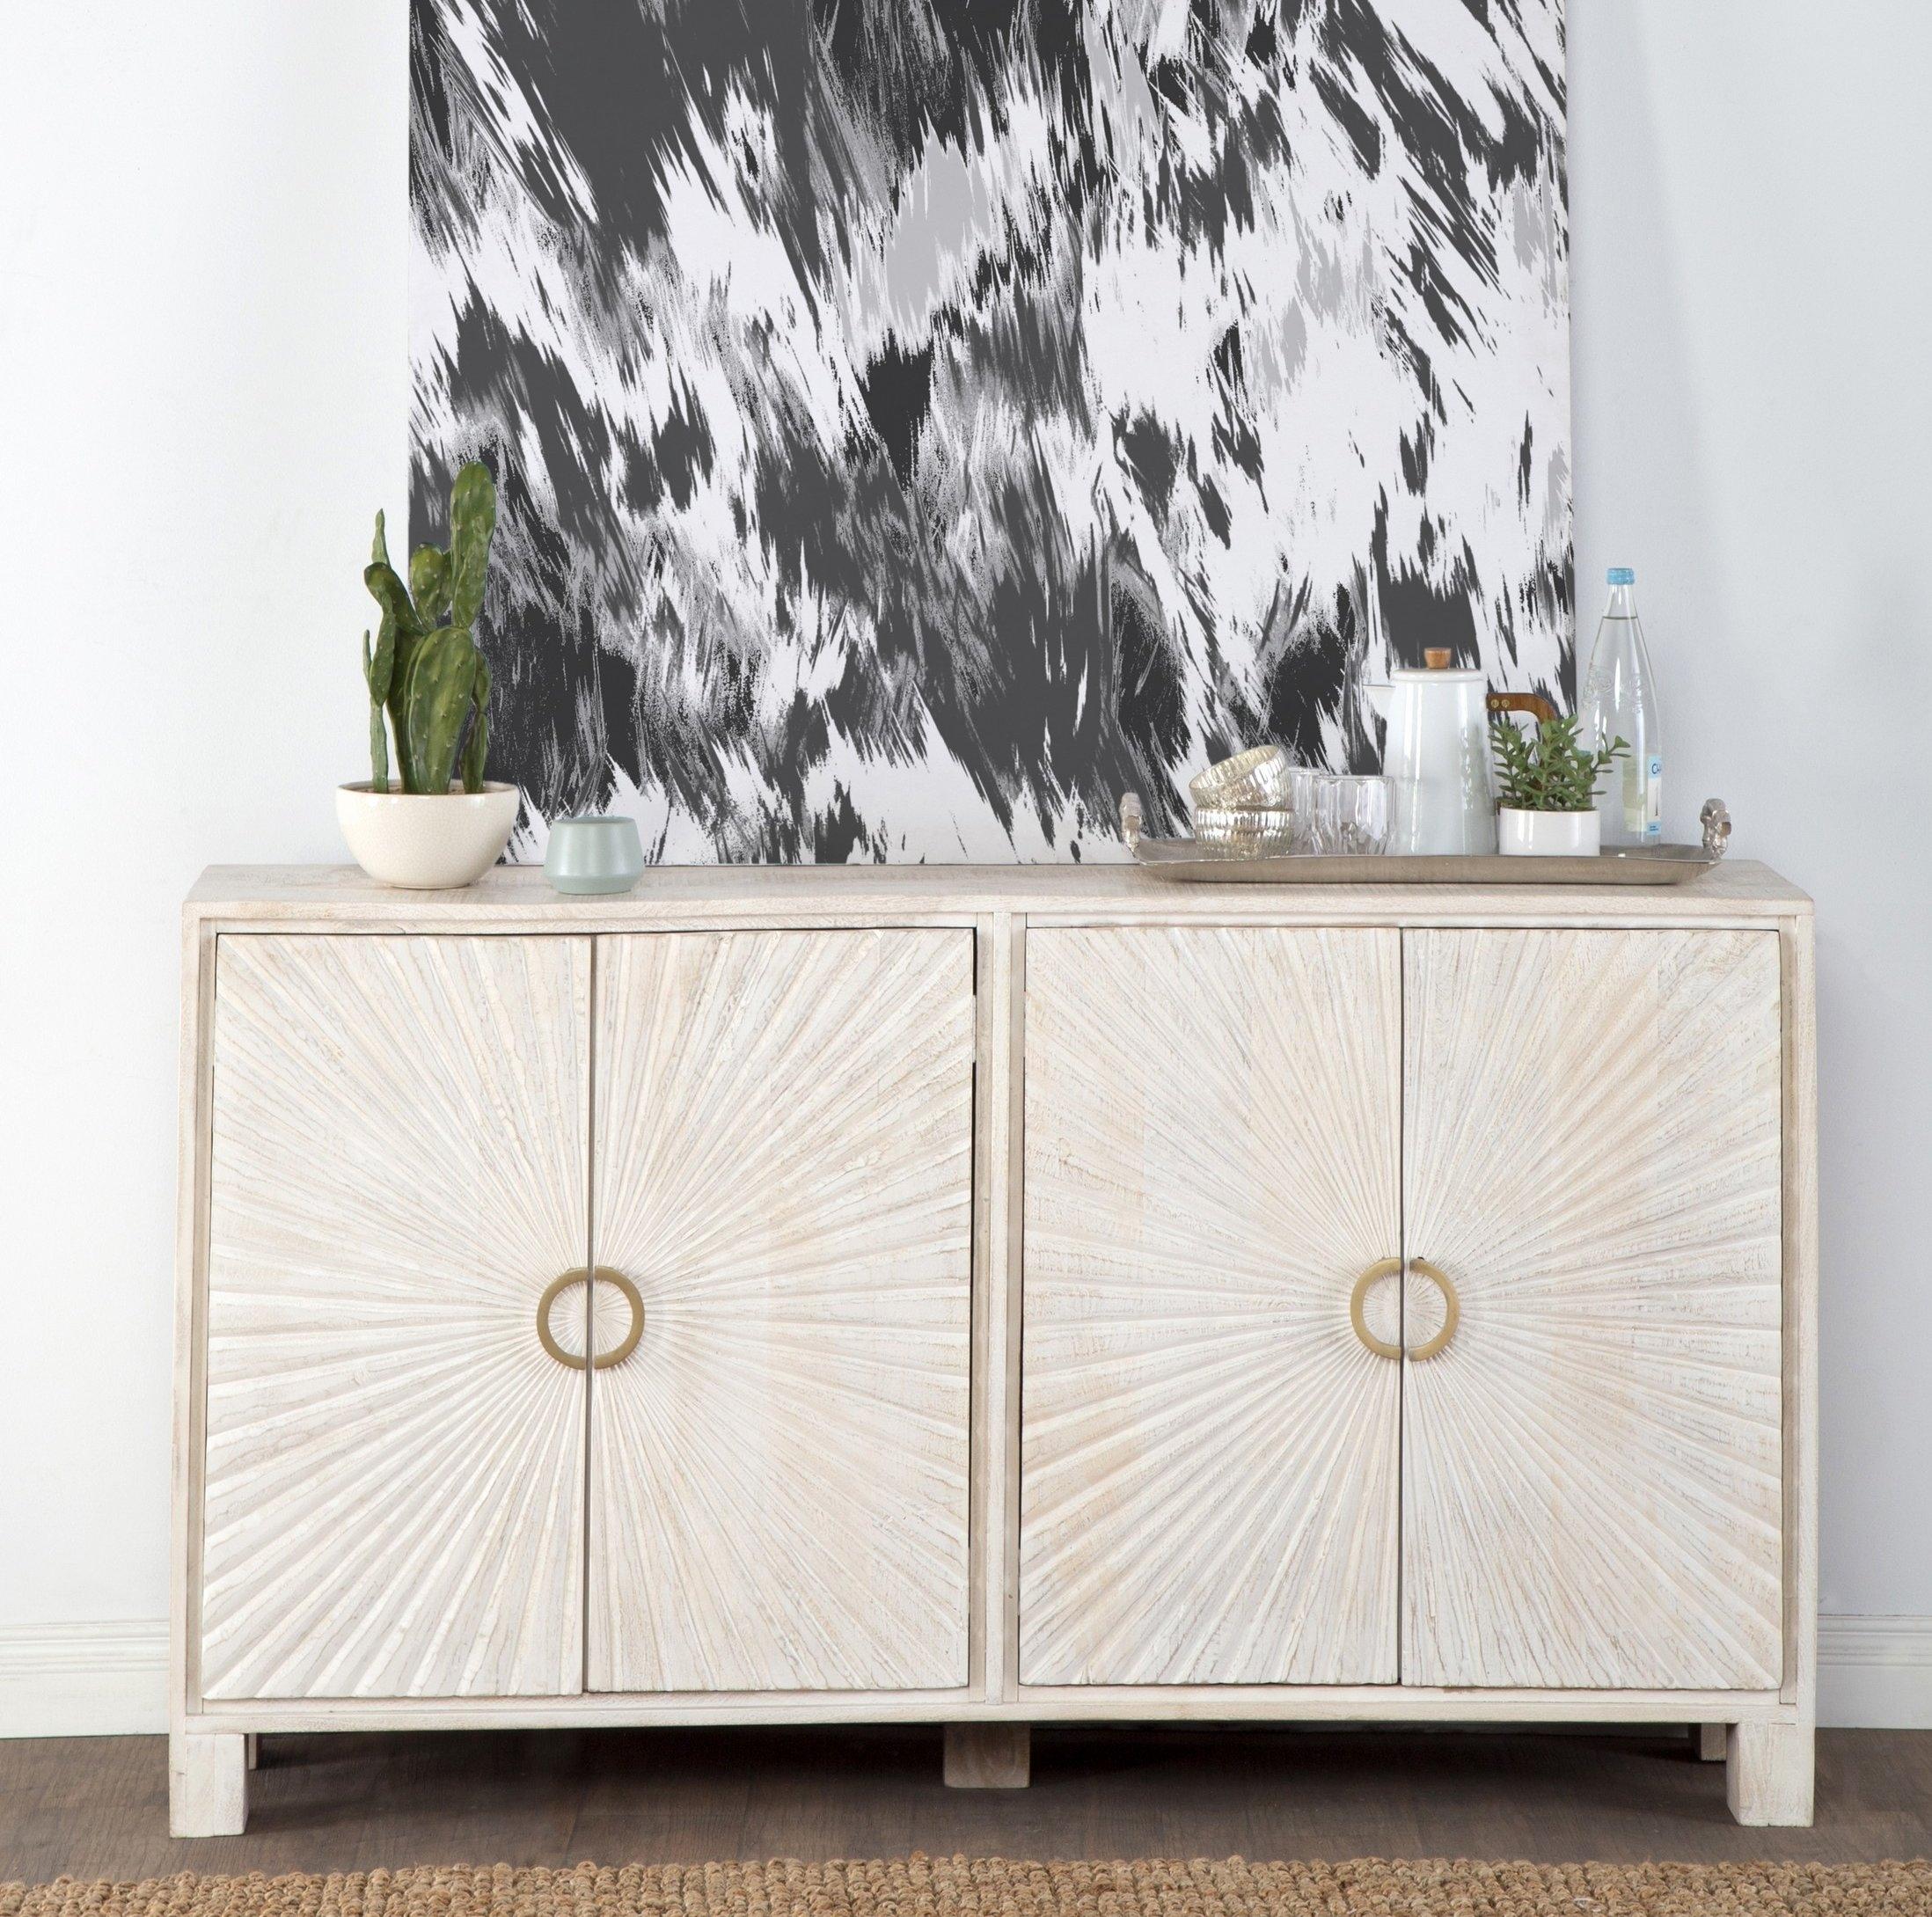 Ophelia & Co. Vidaurri 4 Door Sideboard | Wayfair.ca inside Solar Refinement Sideboards (Image 17 of 30)